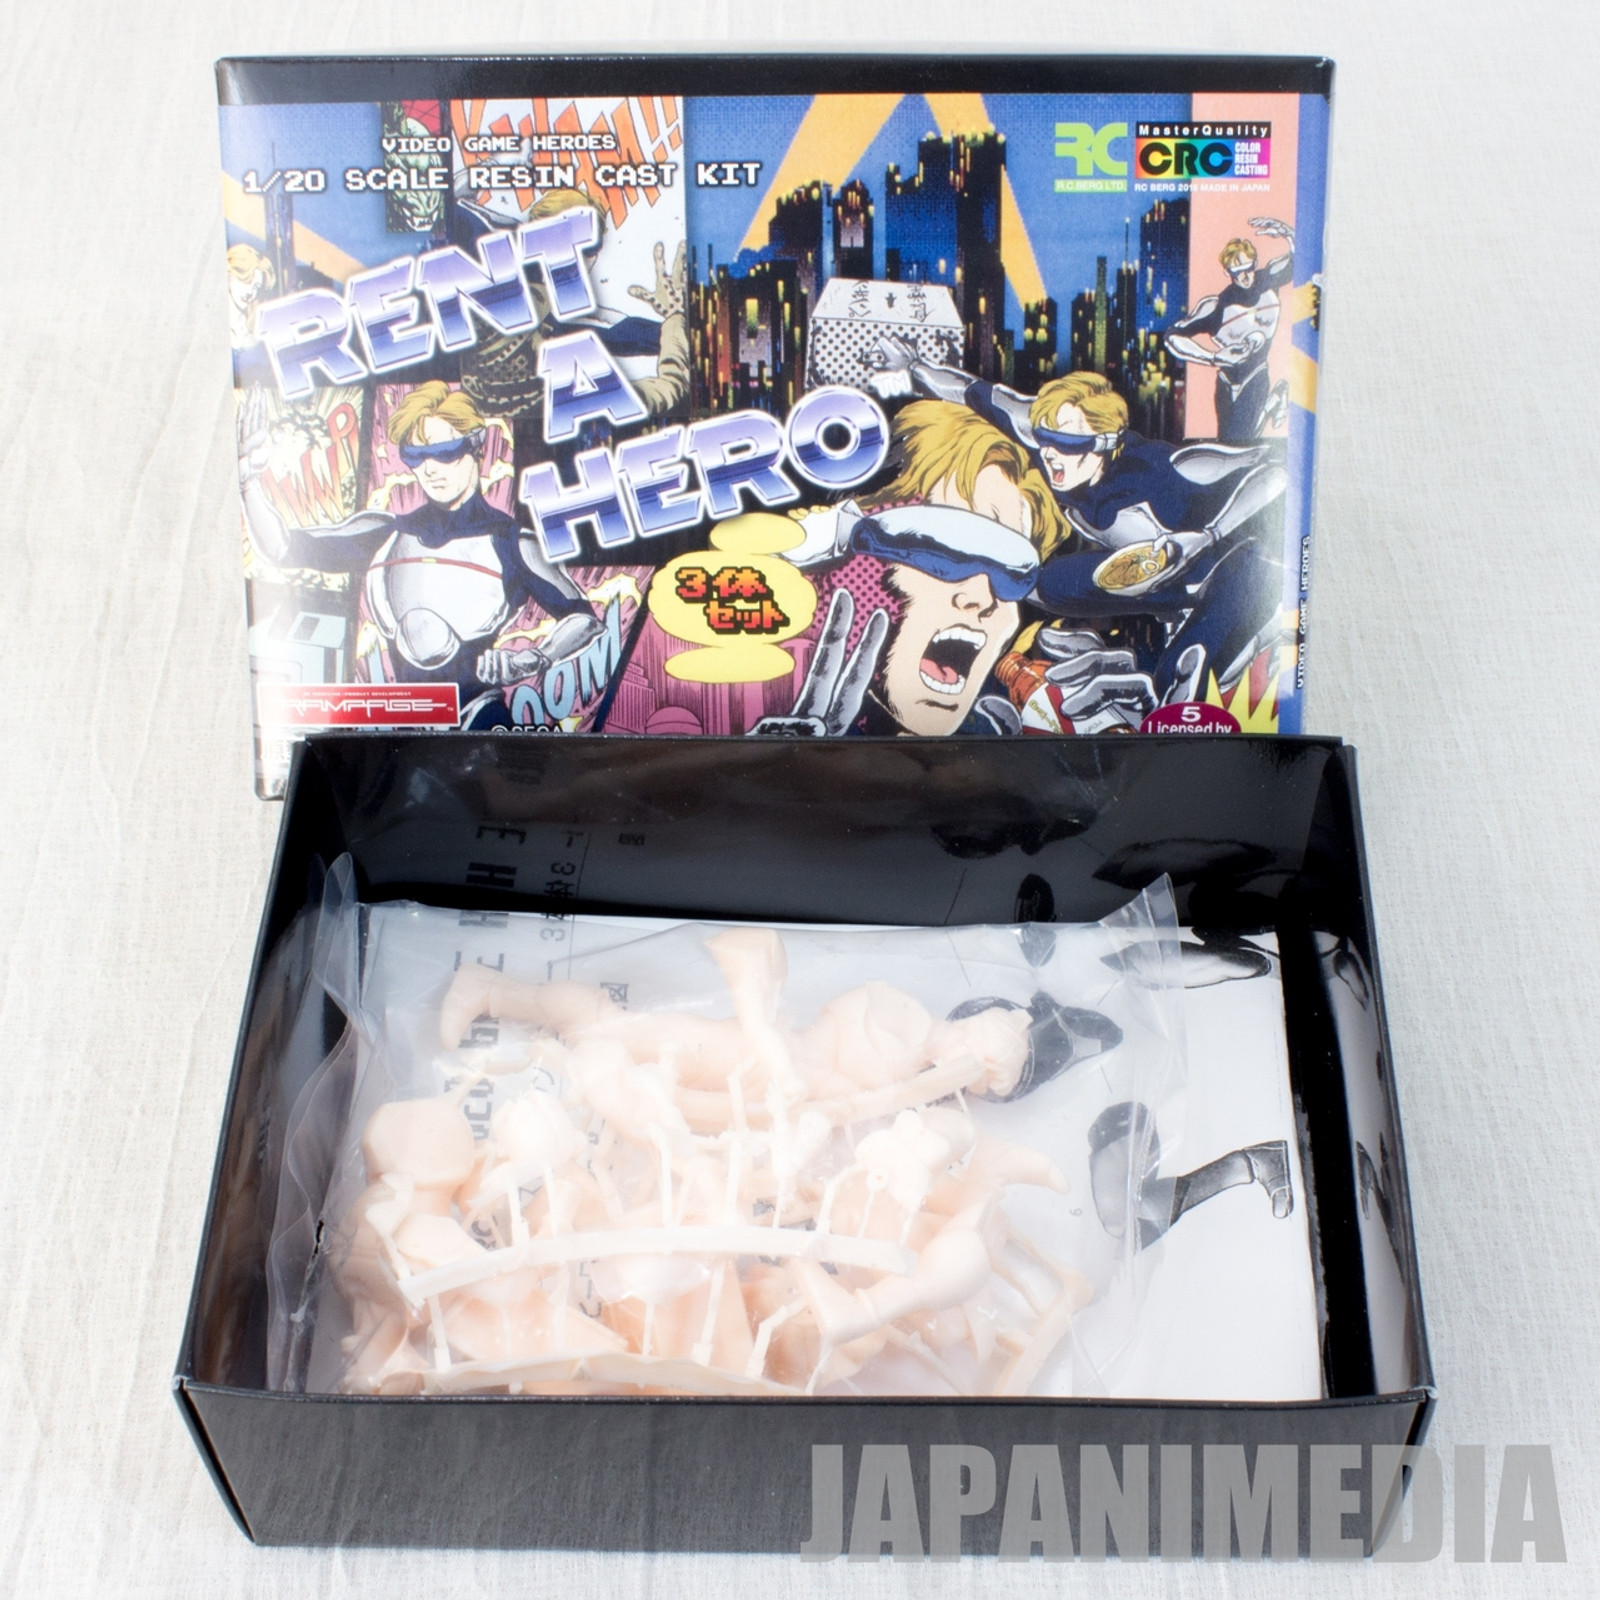 Rent a Hero Resin Cast Model Kit 3pc Set 1/20 Scale MegaDrive SEGA